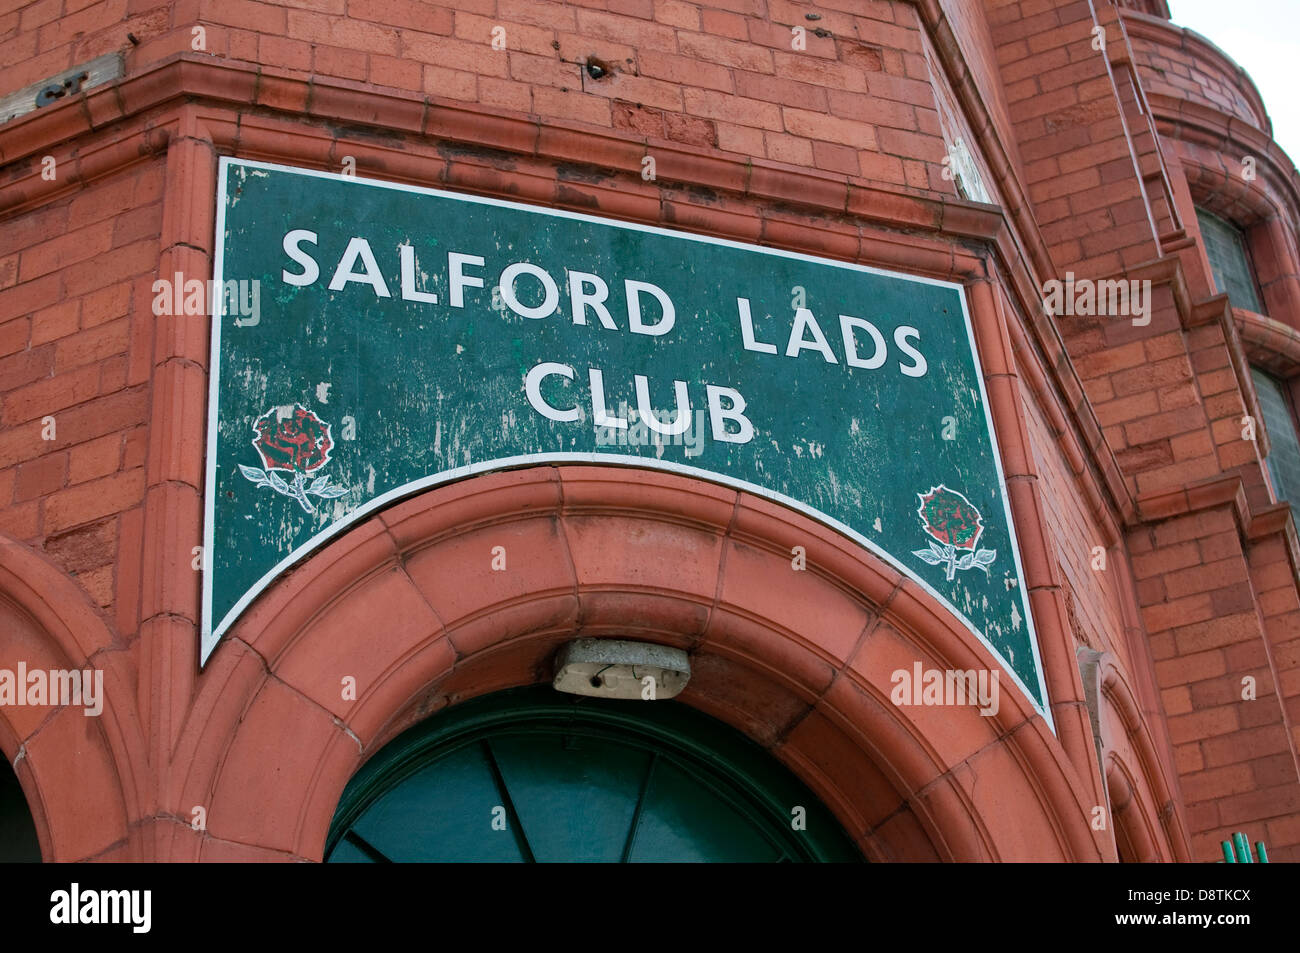 Sign over door for Salford Lads Club, Greater Manchester Stock Photo